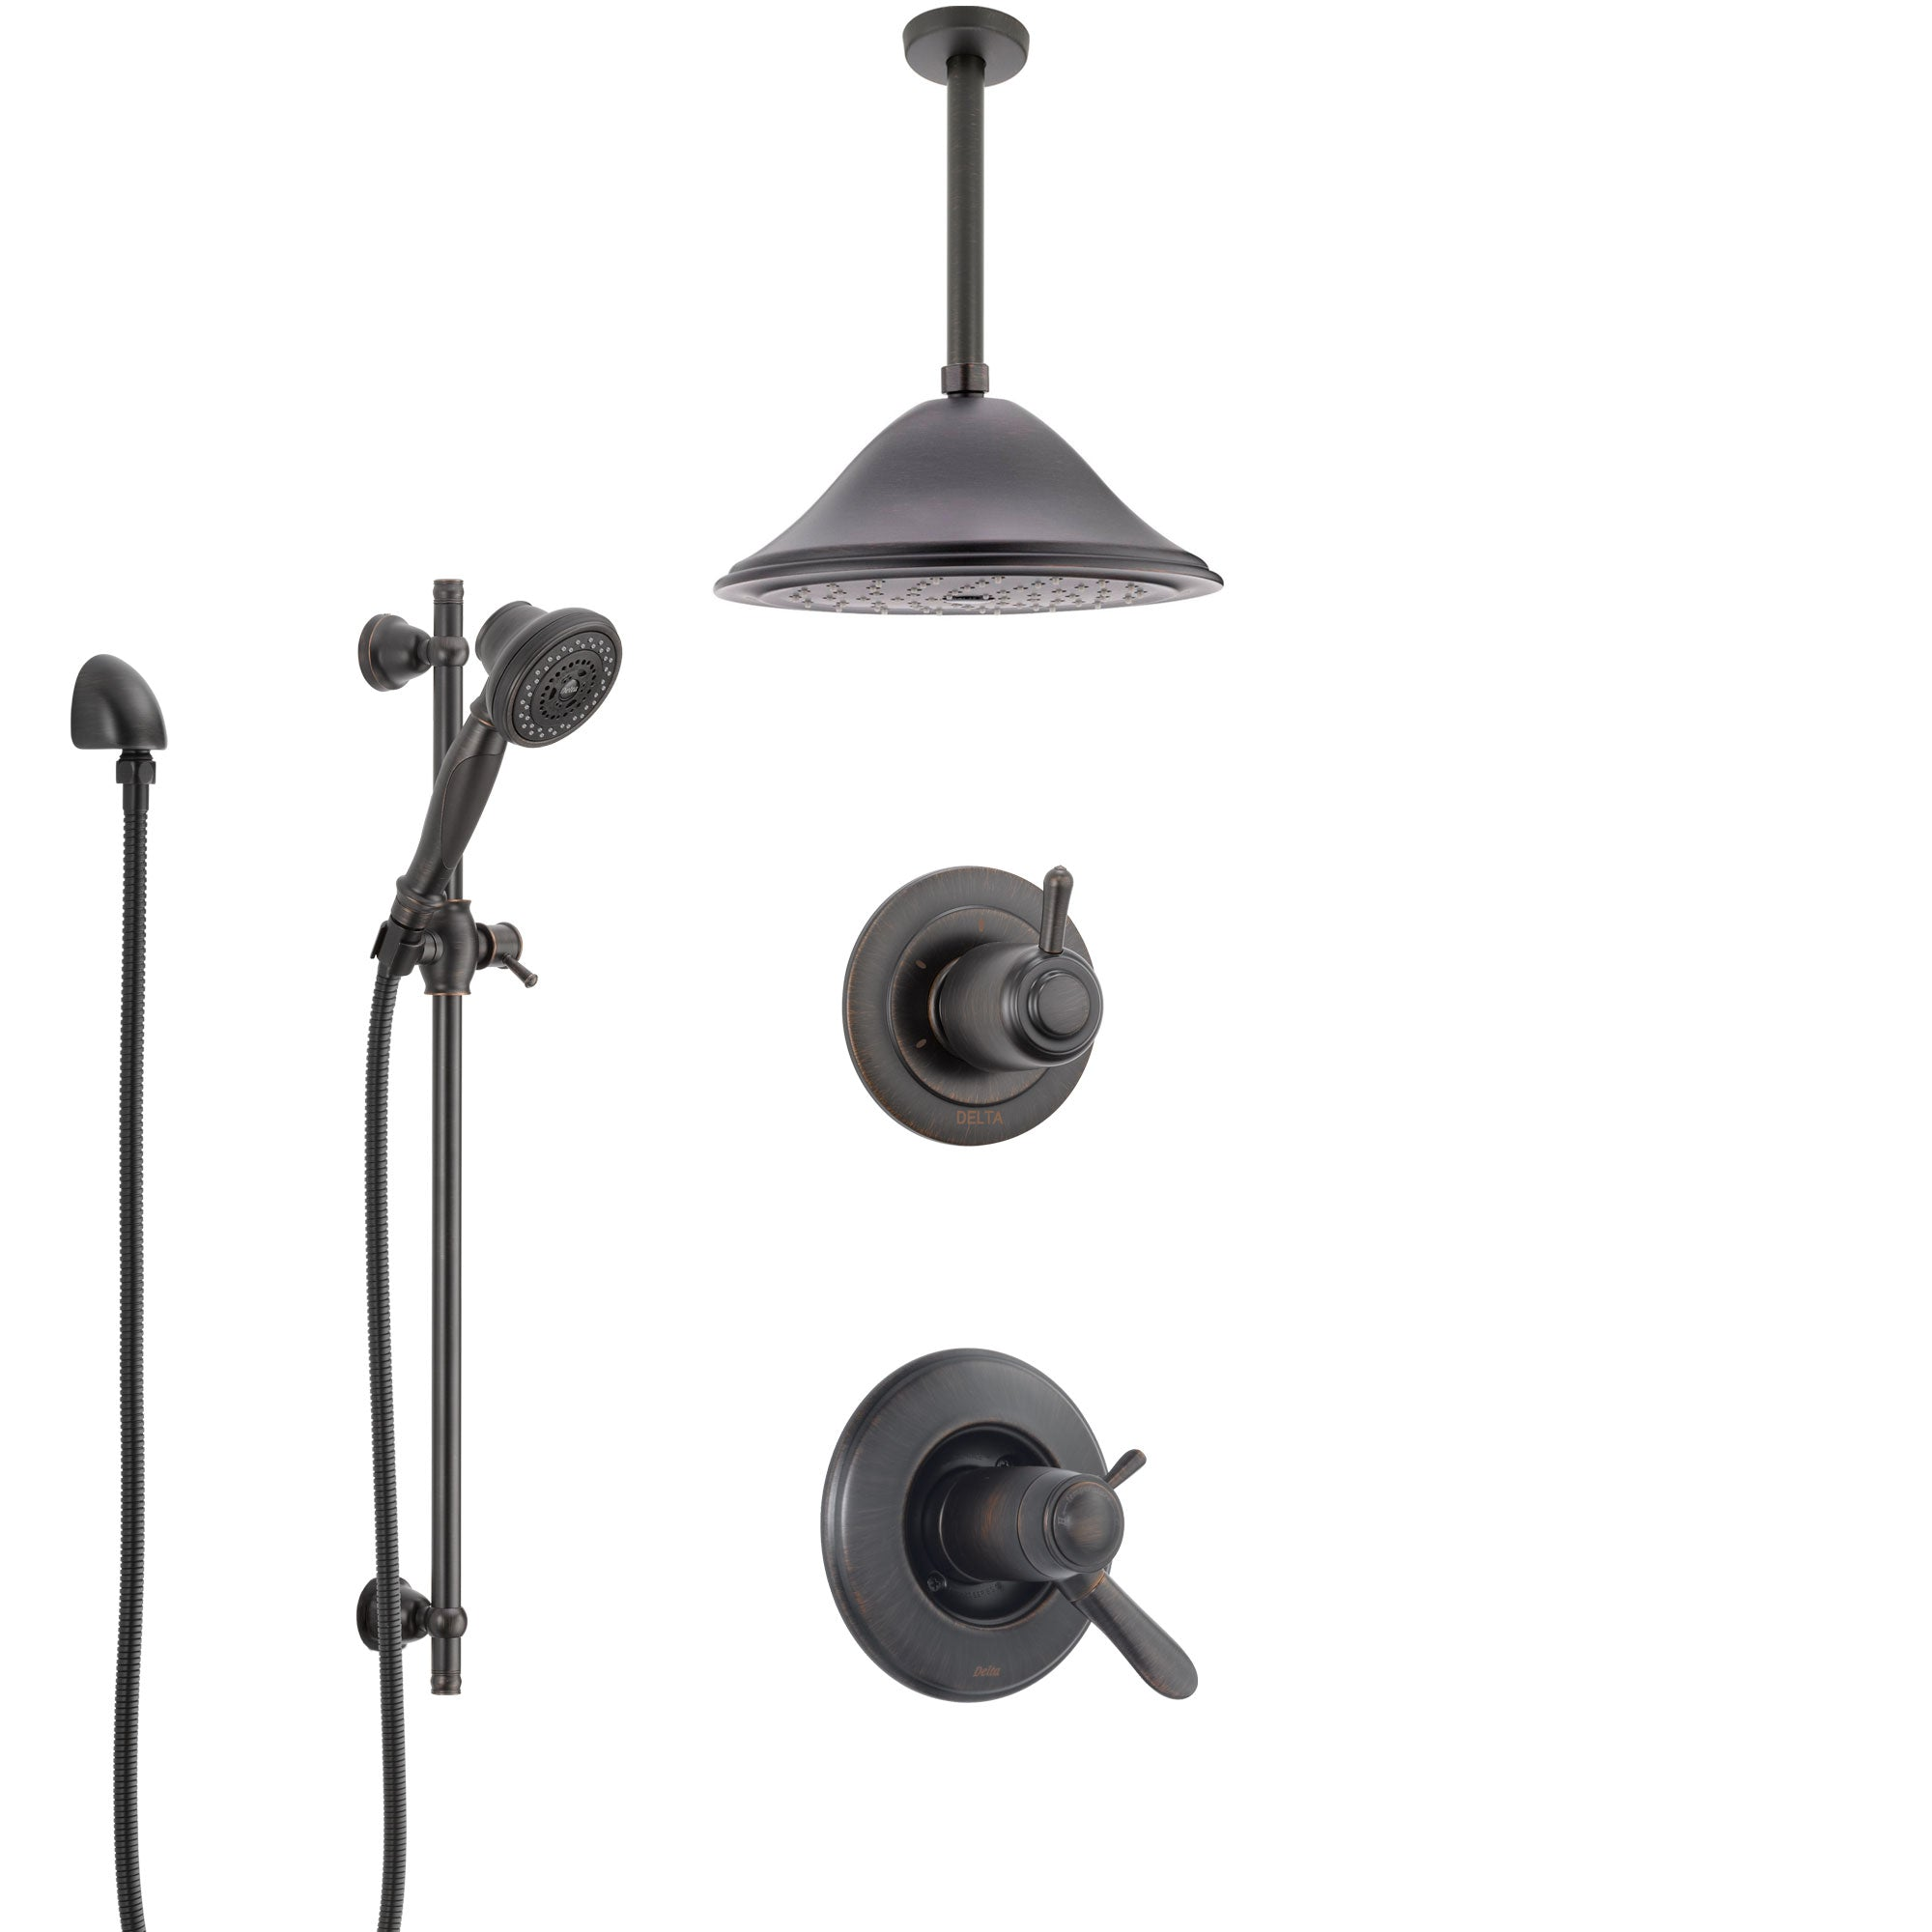 Delta Lahara Venetian Bronze Shower System with Dual Thermostatic Control Handle, Diverter, Ceiling Mount Showerhead, and Hand Shower SS17T381RB3